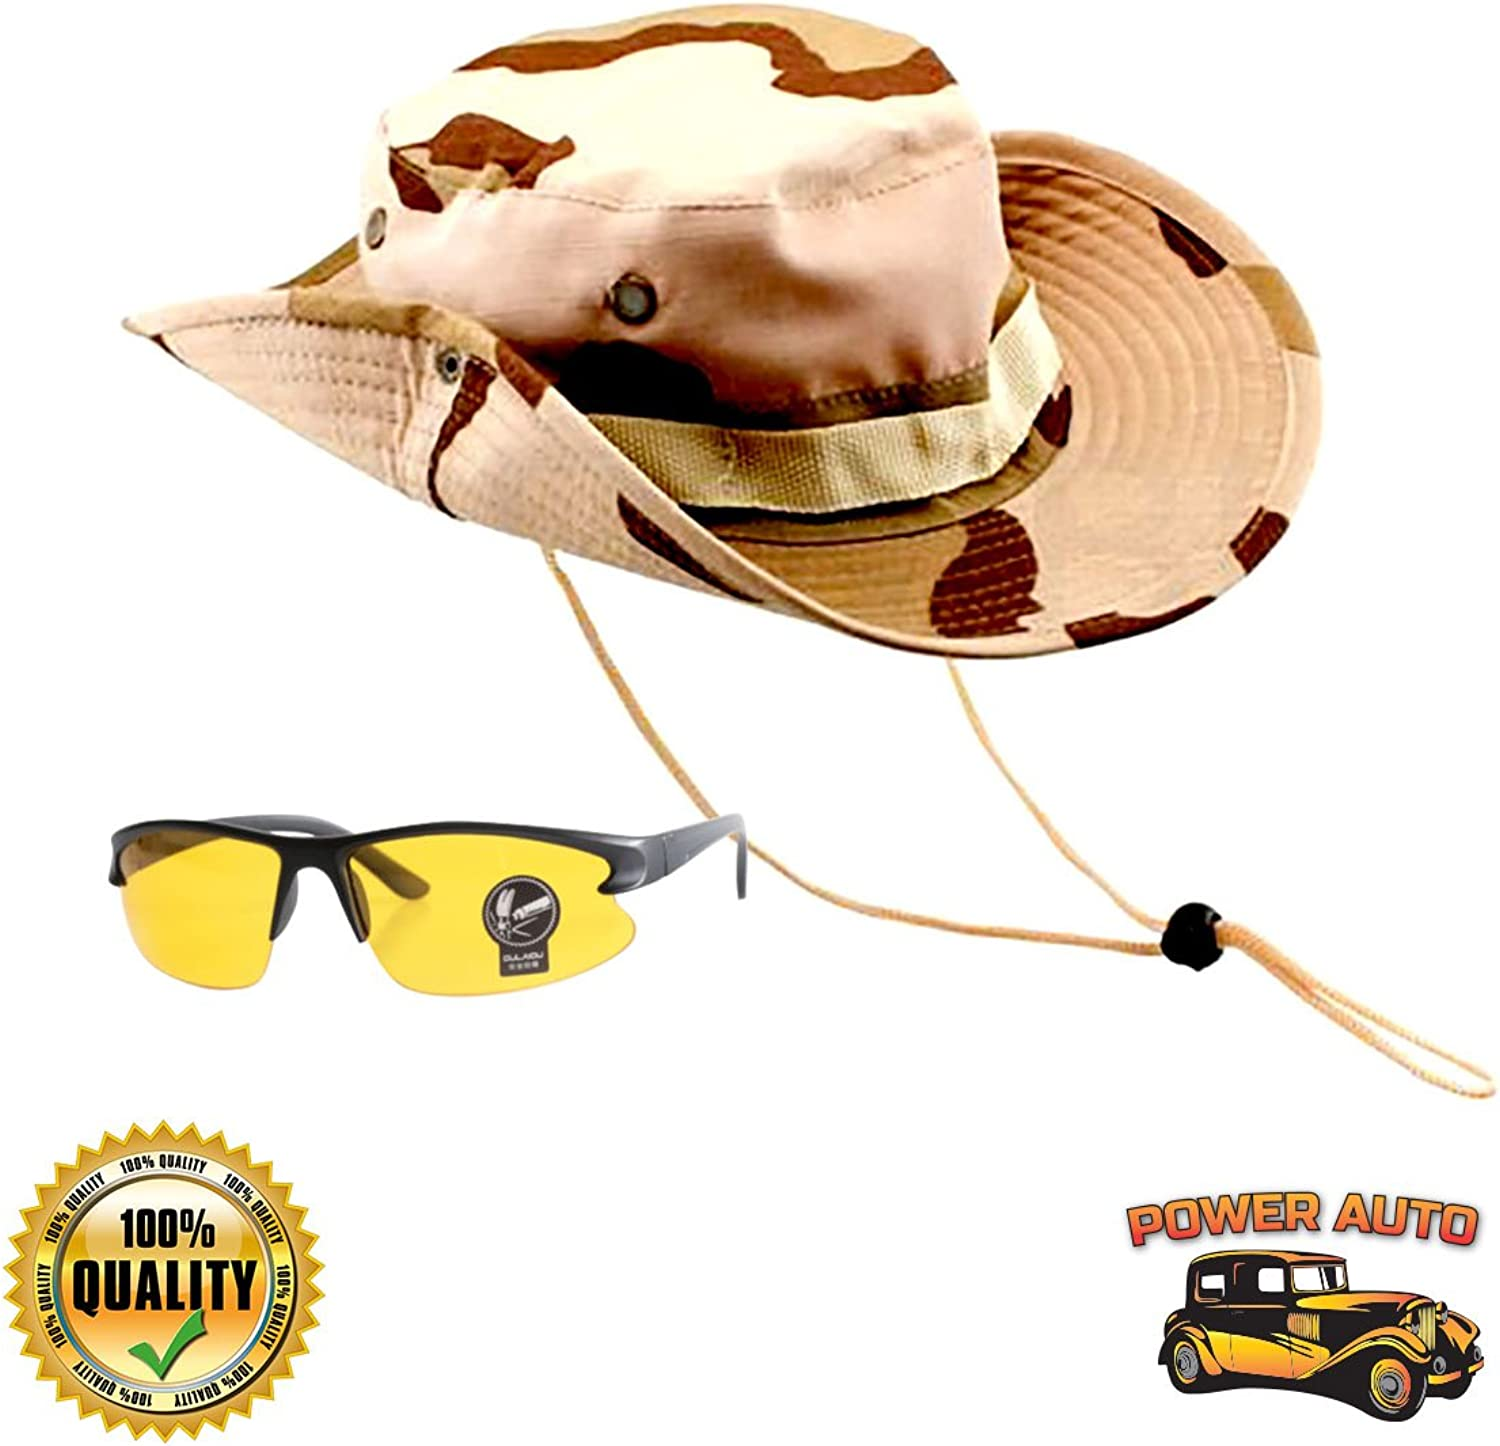 21e936966 Power Auto Mens Bucket Boonie Hat for Hunting, Fishing, Hiking ...